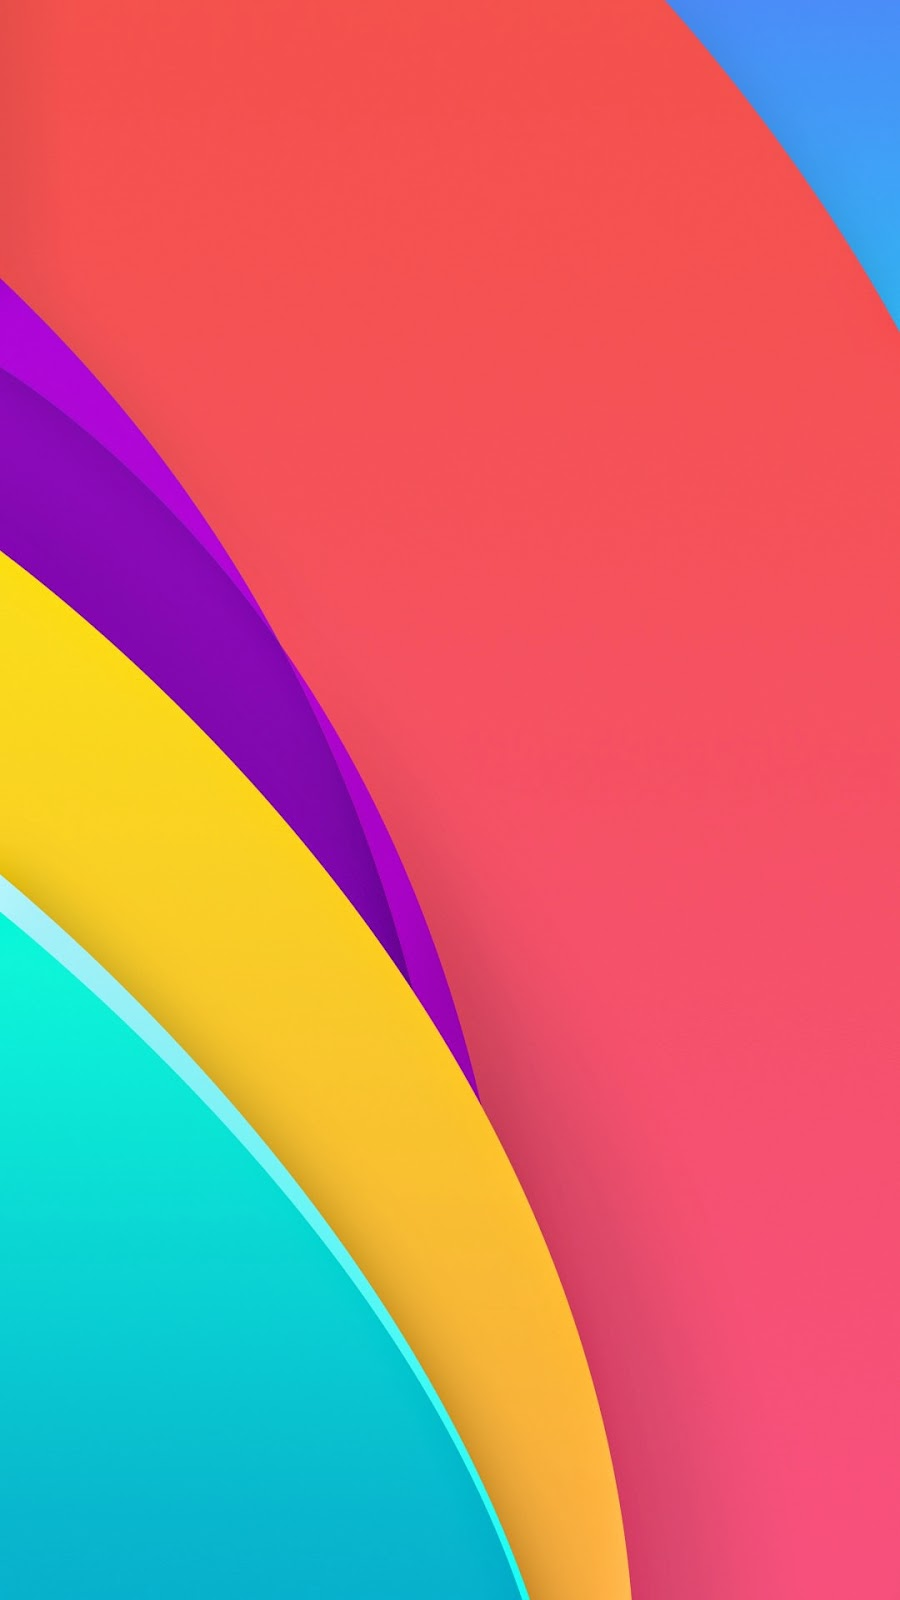 Hd wallpaper oppo - Stock Colorful Wallpaper Of Oppo R1c